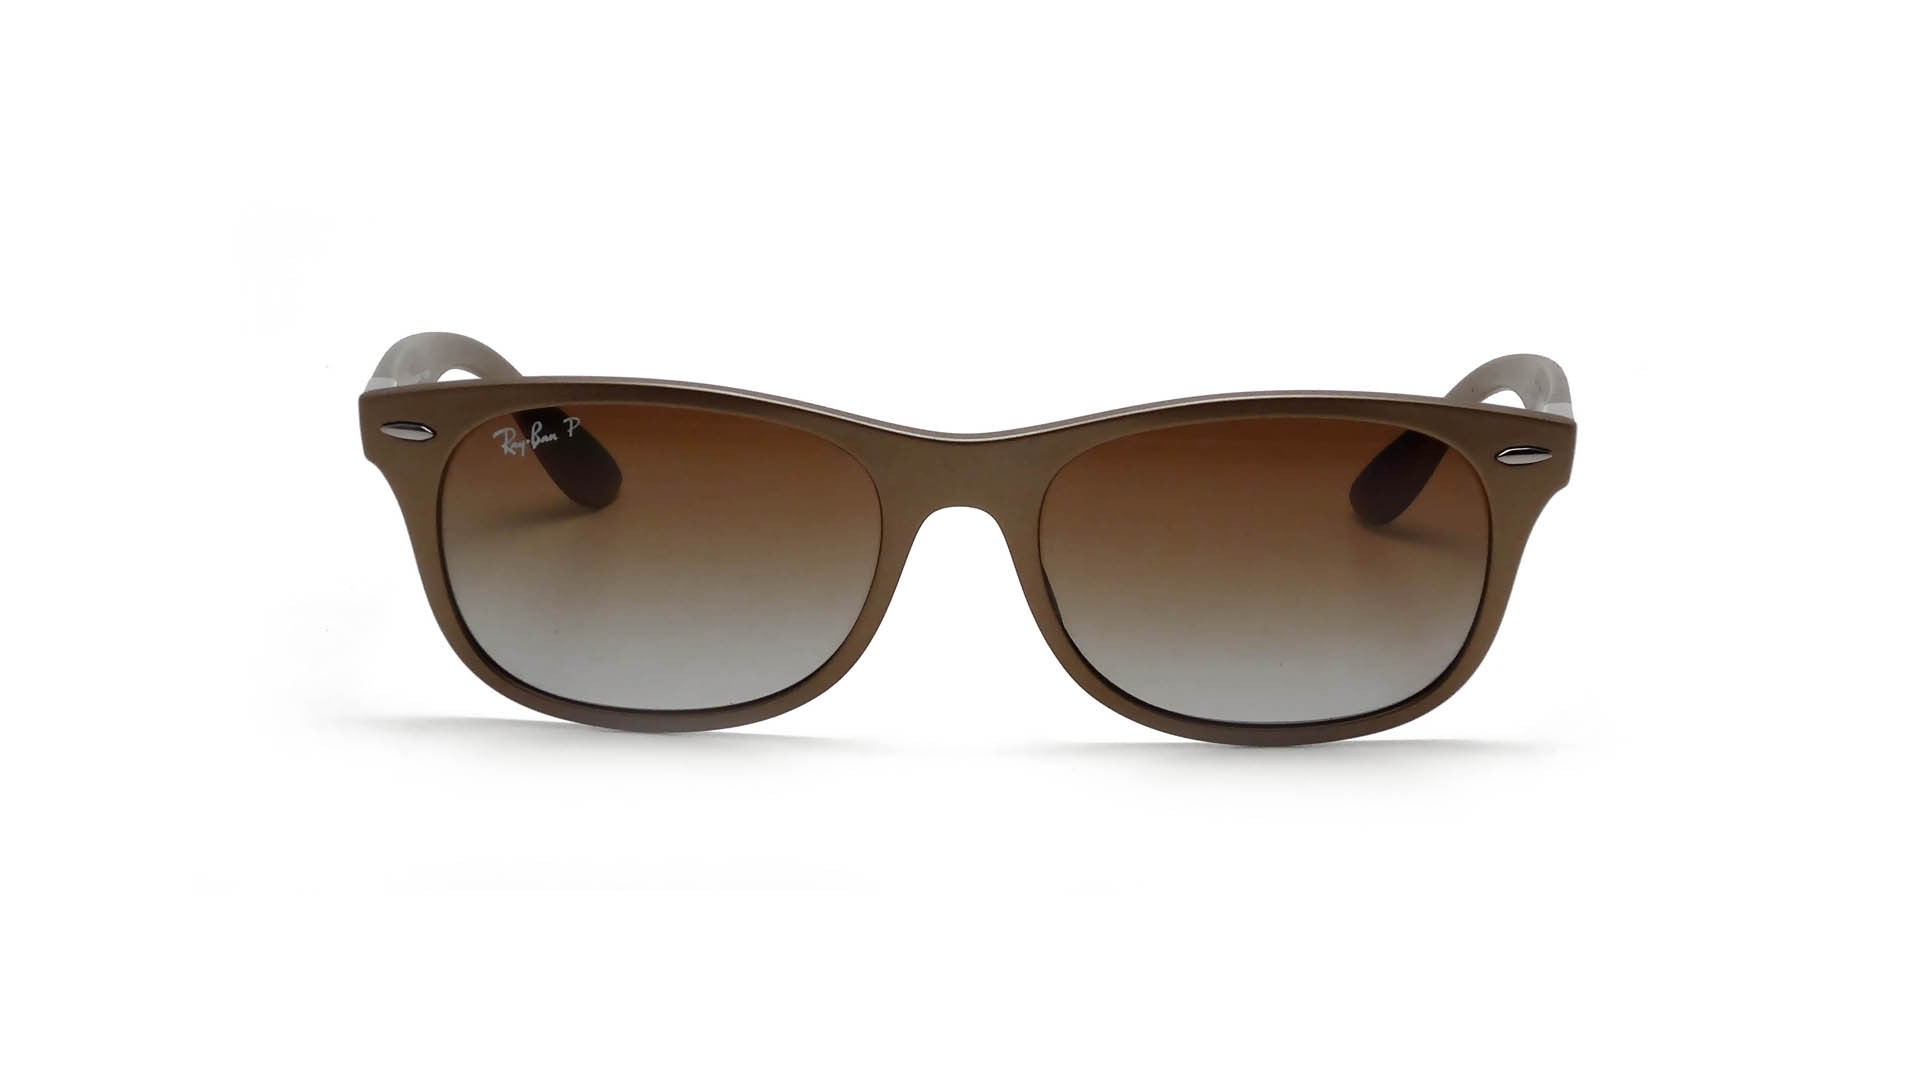 8cd02caec9 Ray Ban New Wayfarer Liteforce Polarized « Heritage Malta